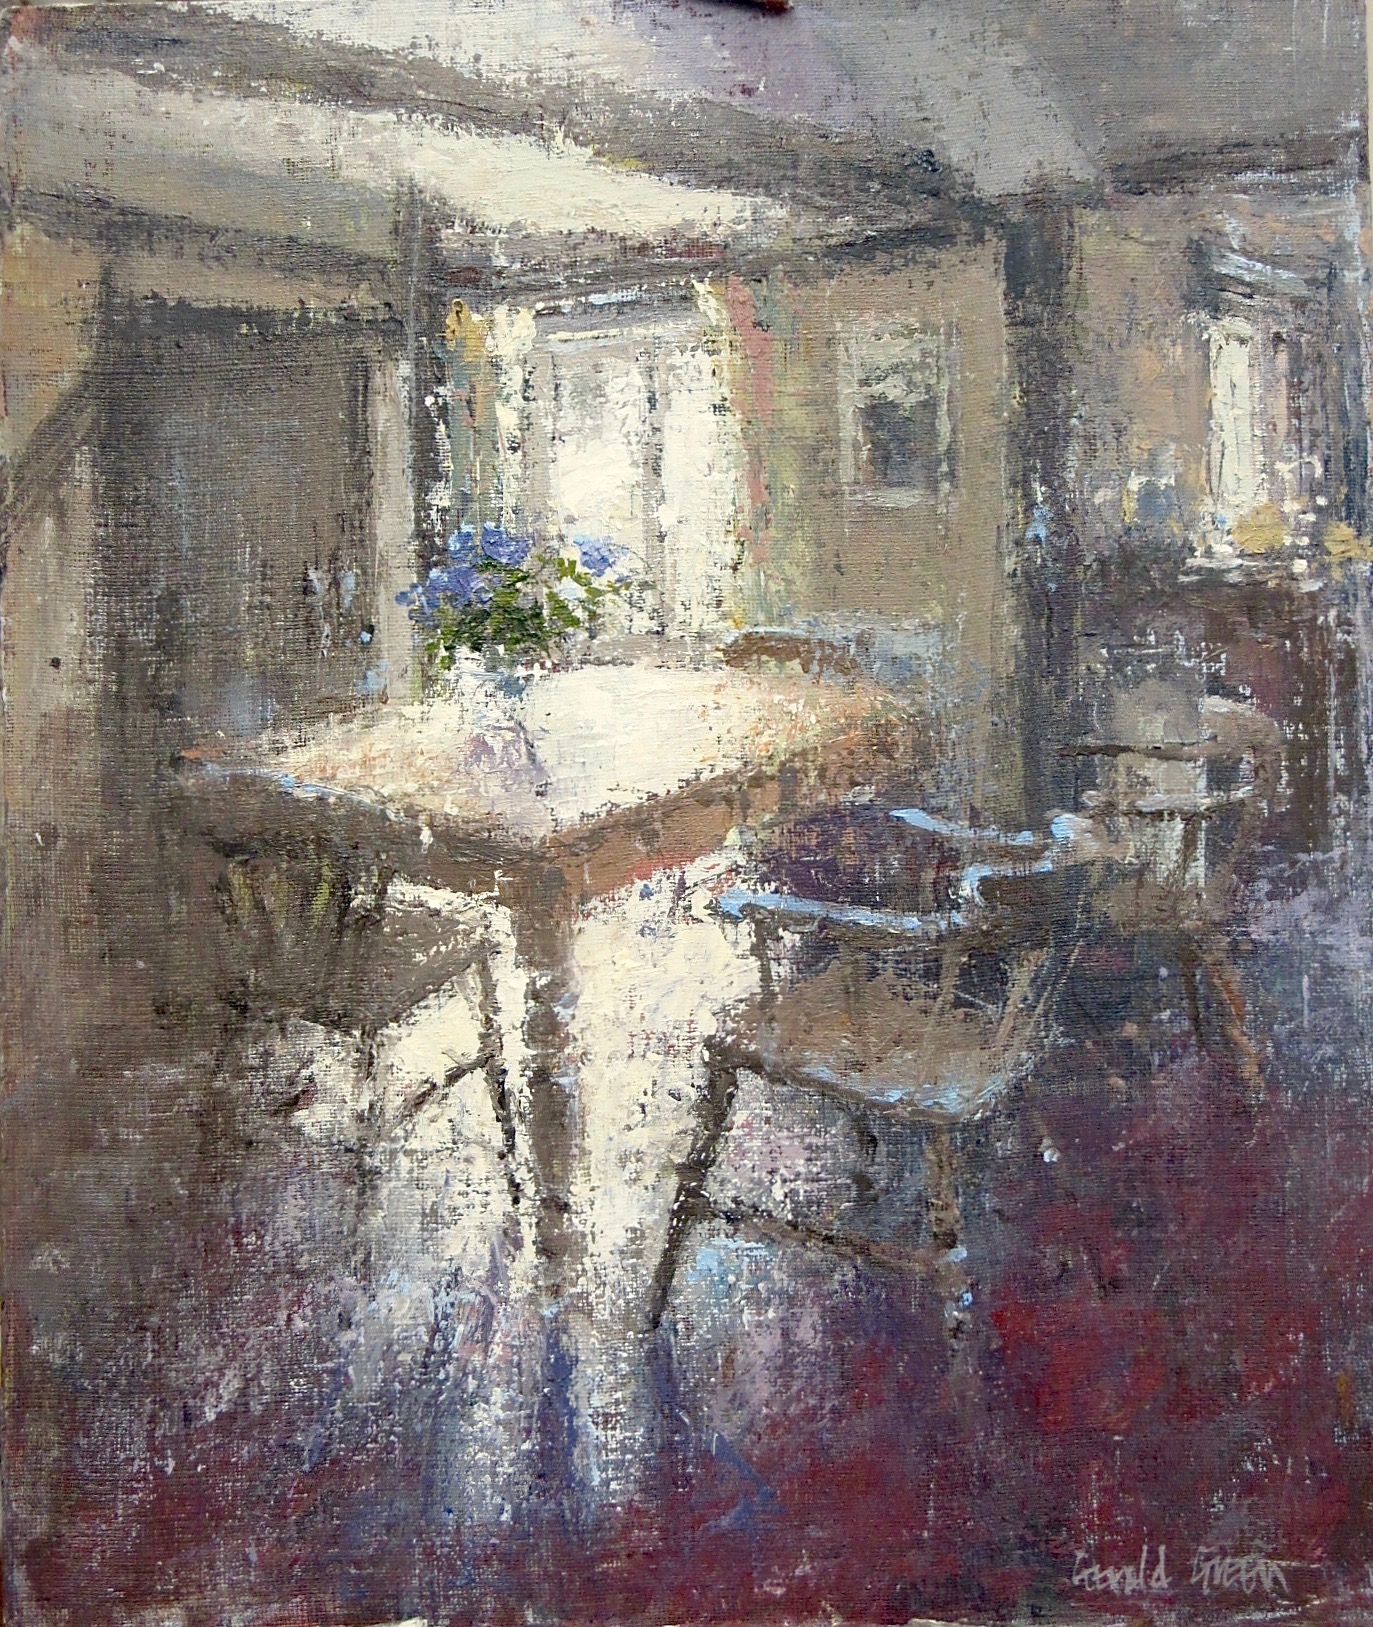 Sunlight in the Kitchen: 14.25 x 12 in: £950   (currently at Thompsons Gallery Aldeburgh)